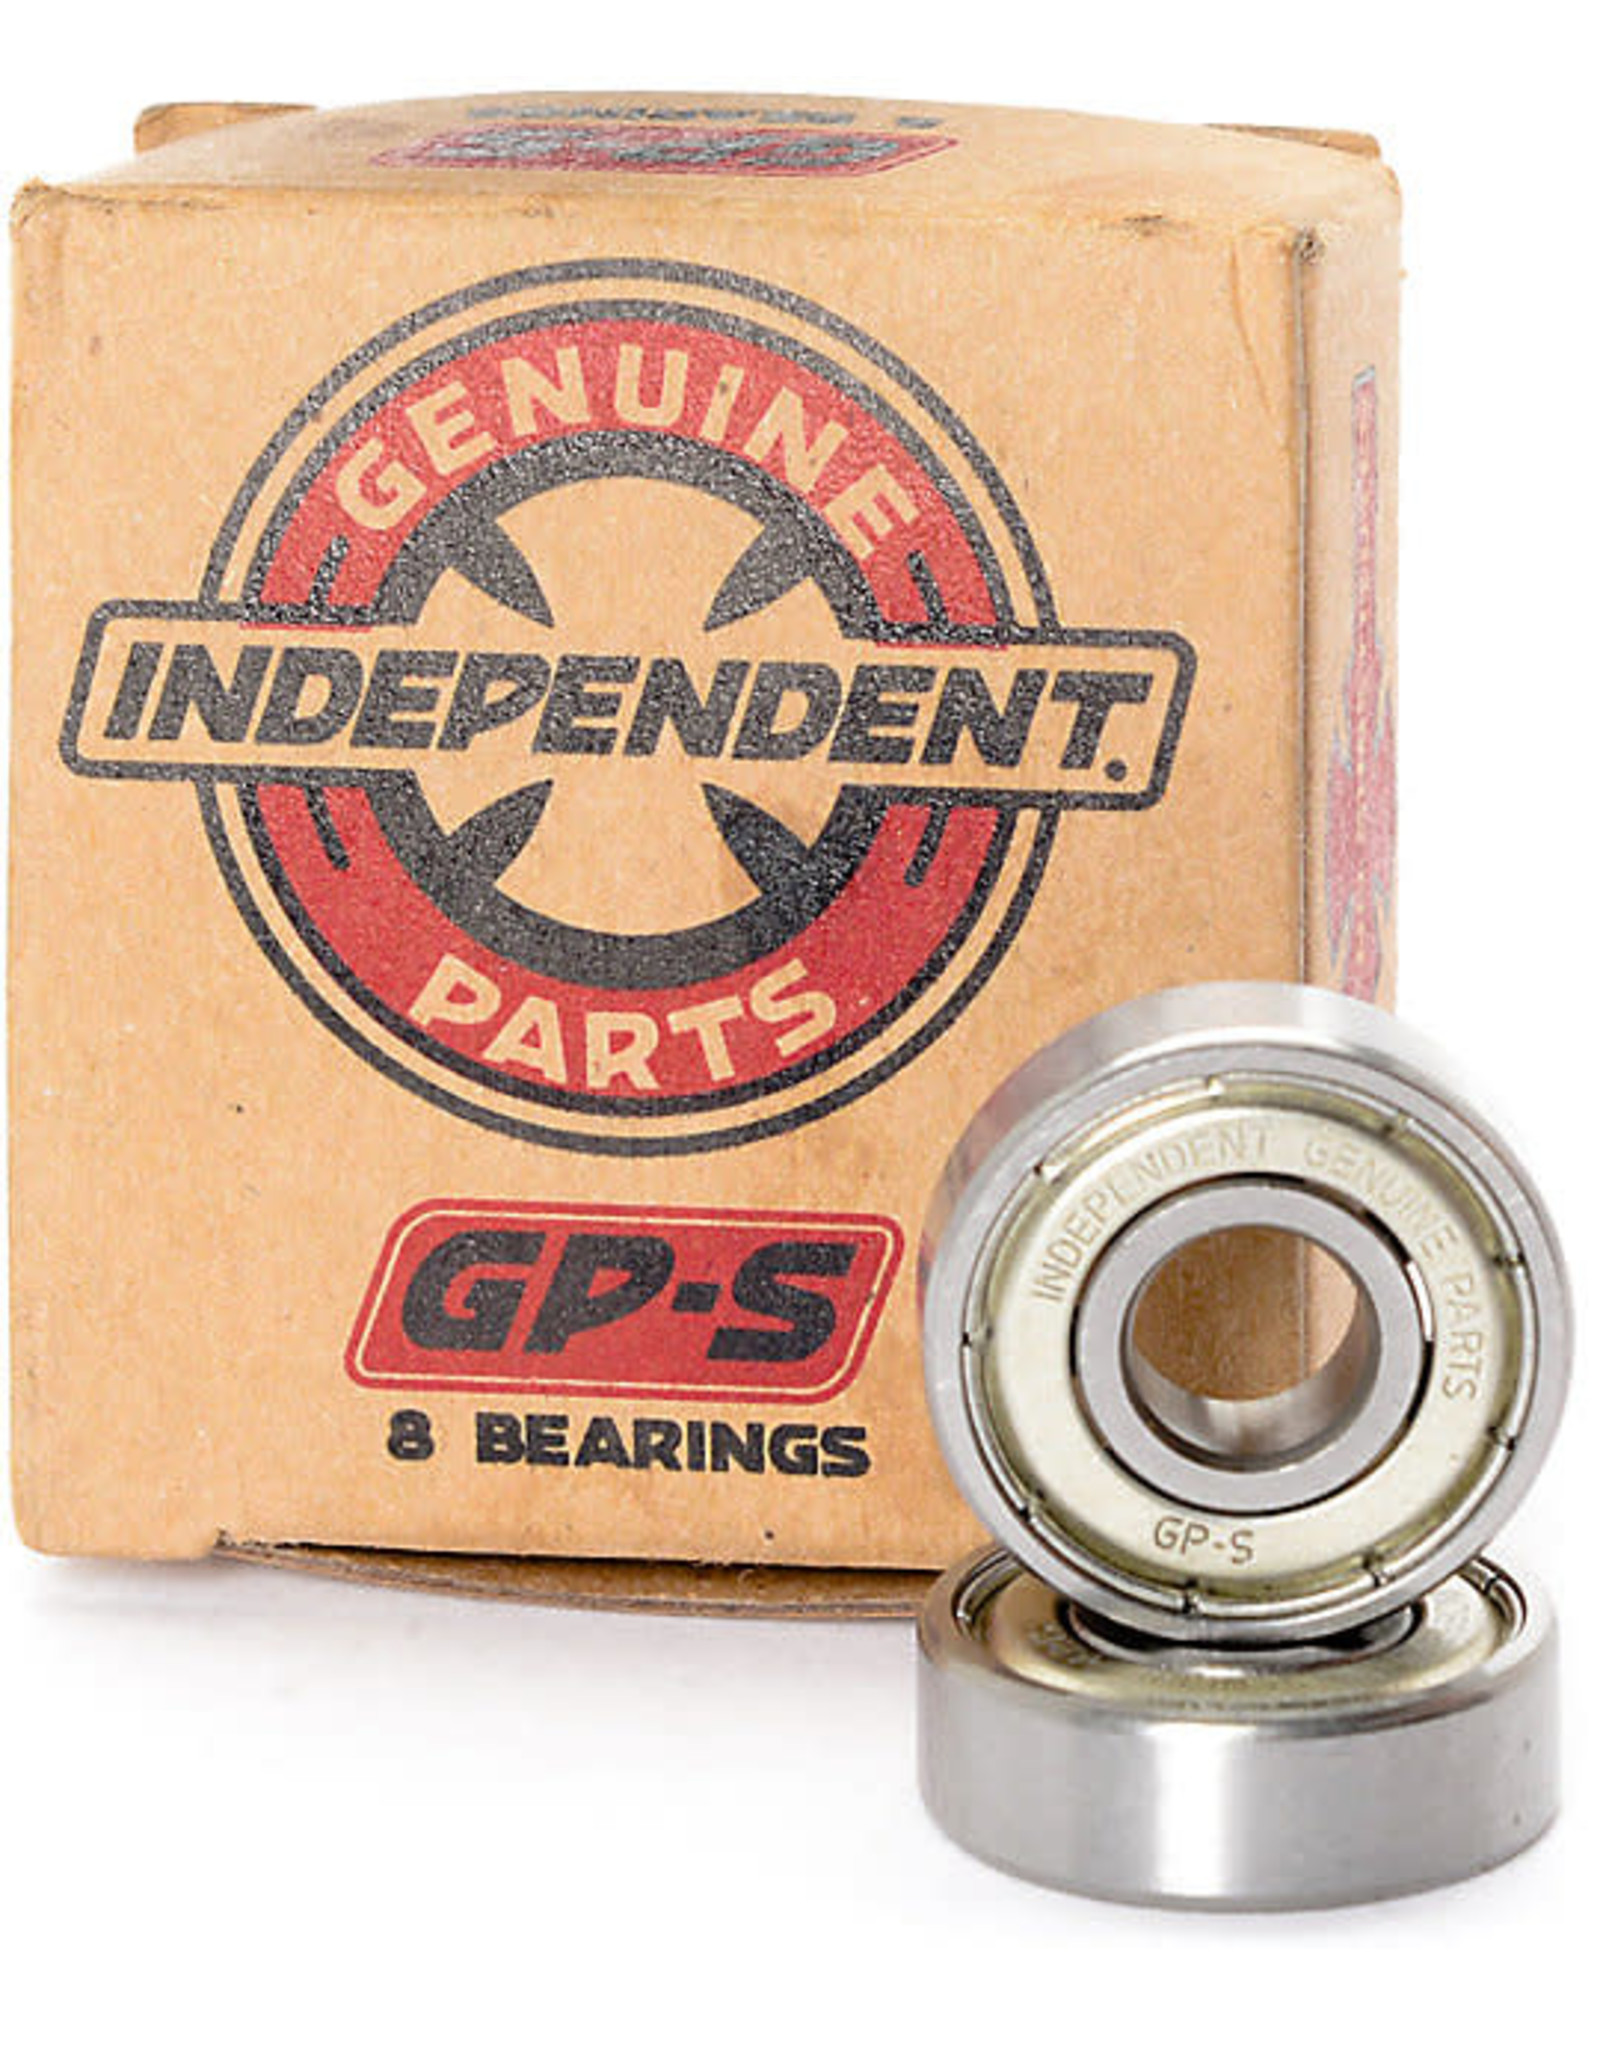 INDY PP BEARINGS